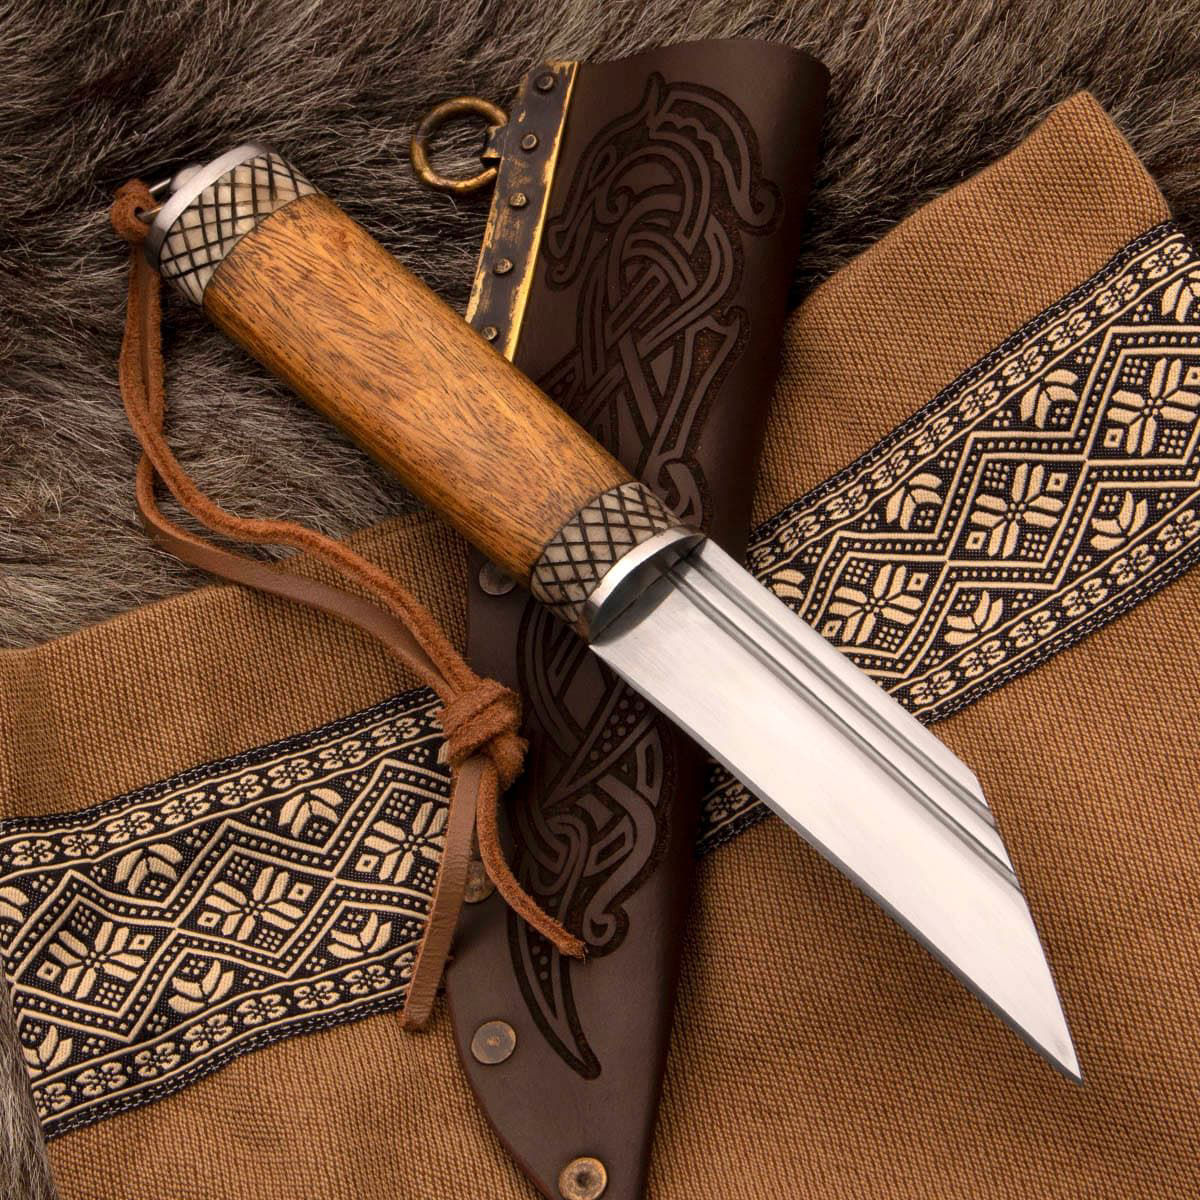 Huntsman's Hadseax Viking Knife with high carbon steel blade, brass hardware, hardwood handle and embossed leather sheath